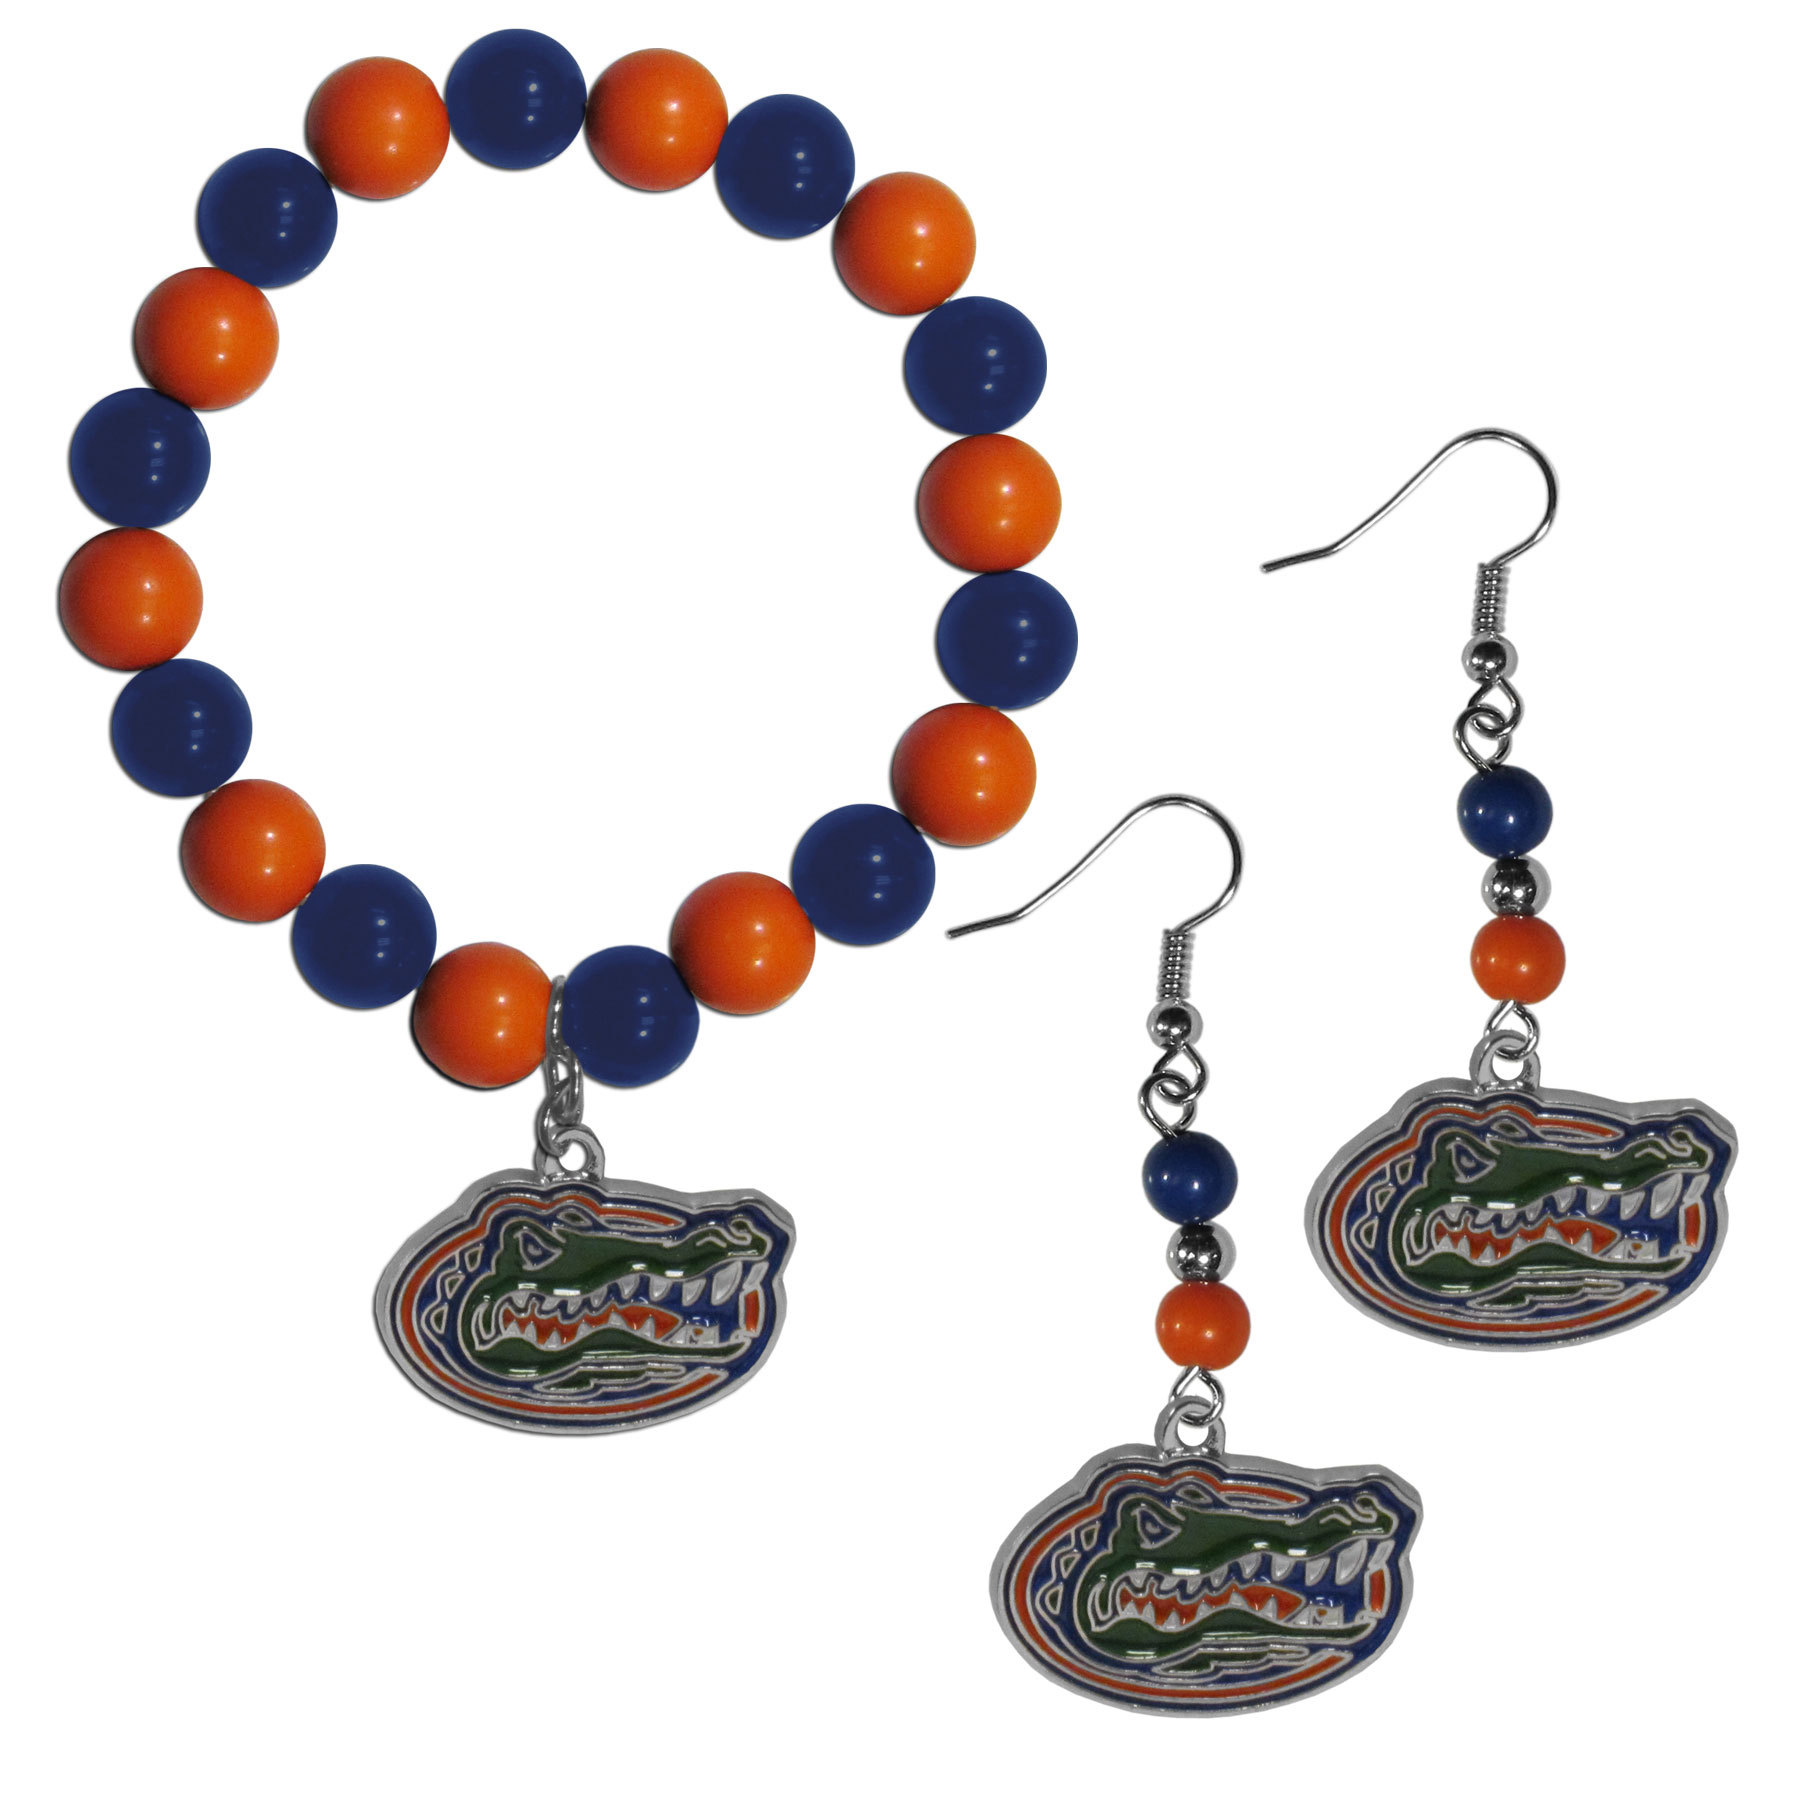 Florida Gators Fan Bead Earrings and Bracelet Set - This fun and colorful Florida Gators fan bead jewelry set is fun and casual with eye-catching beads in bright team colors. The fashionable dangle earrings feature a team colored beads that drop down to a carved and enameled charm. The stretch bracelet has larger matching beads that make a striking statement and have a matching team charm. These sassy yet sporty jewelry pieces make a perfect gift for any female fan. Spice up your game-day outfit with these fun colorful earrings and bracelet that are also cute enough for any day.